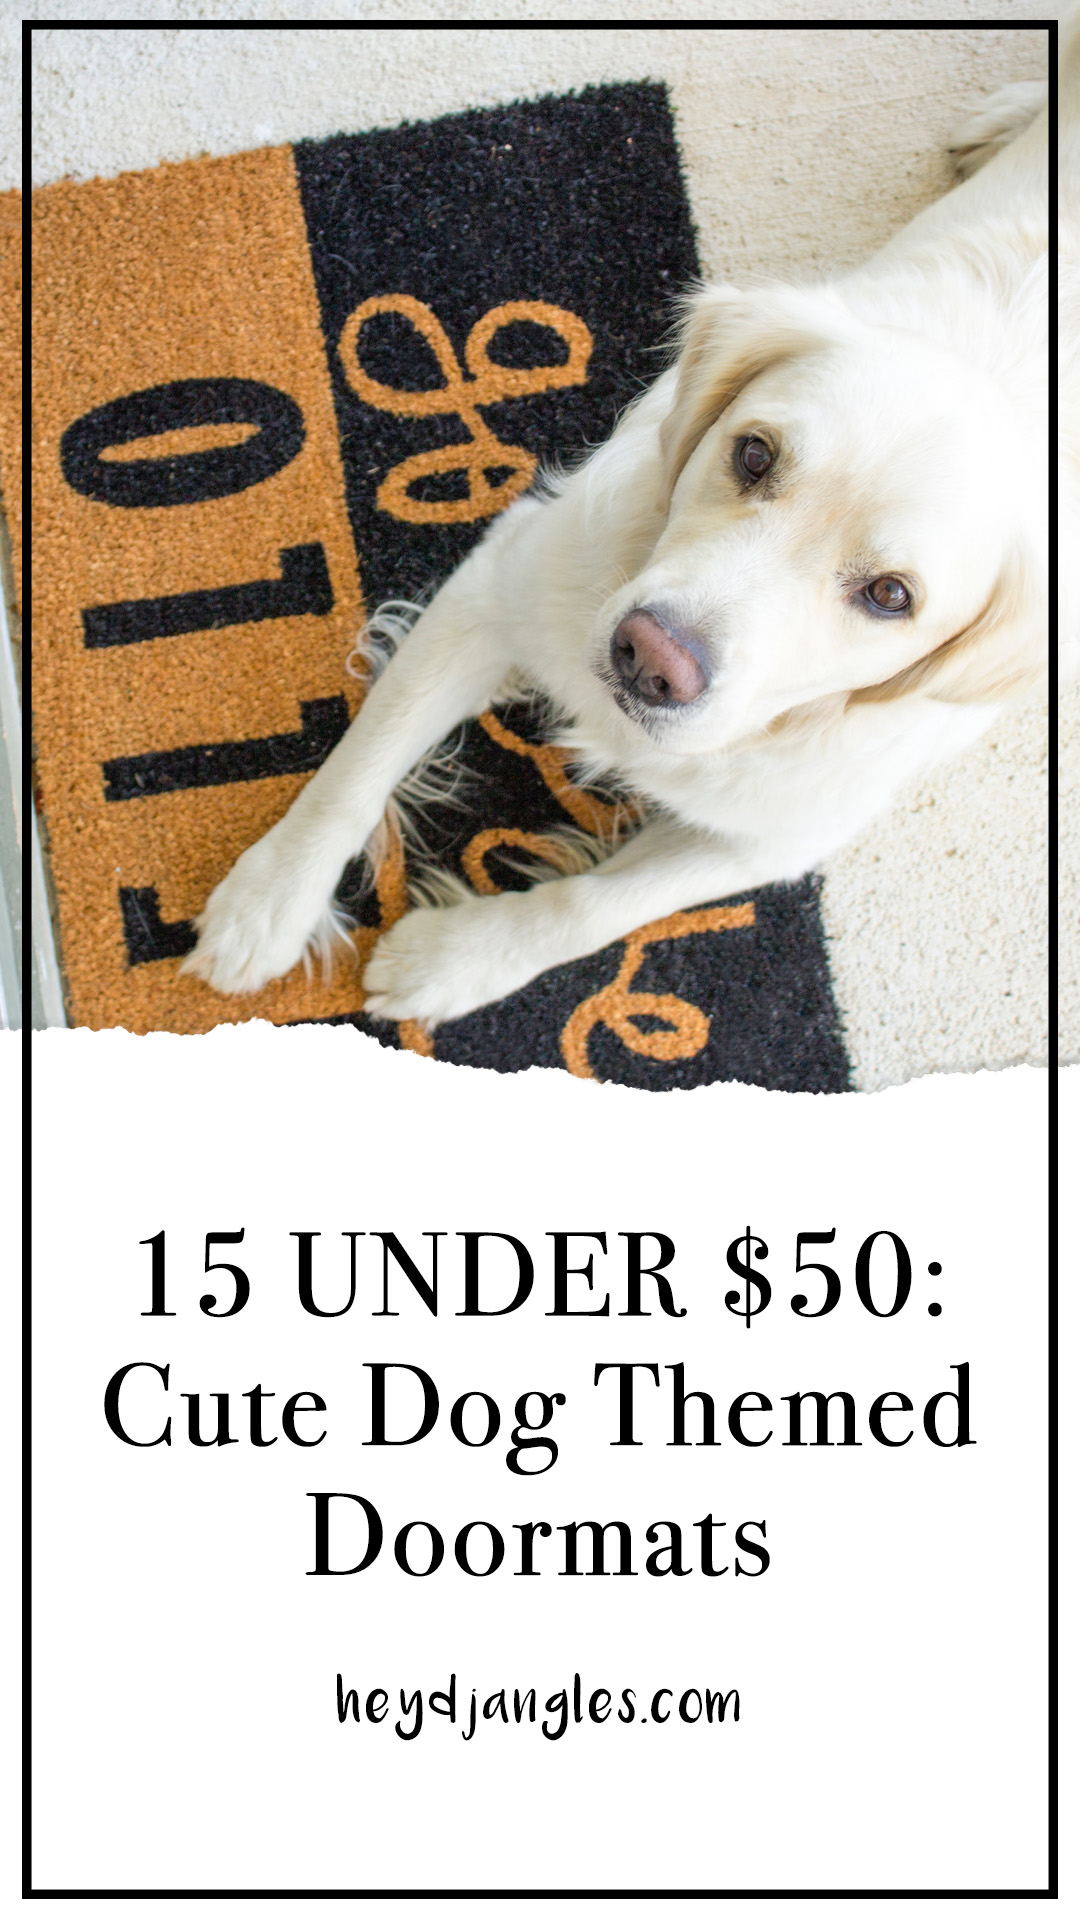 15 UNDER $50: Cute Dog Themed Doormats – heydjangles.com – dog décor, dog themed home décor, gifts for dog lovers.